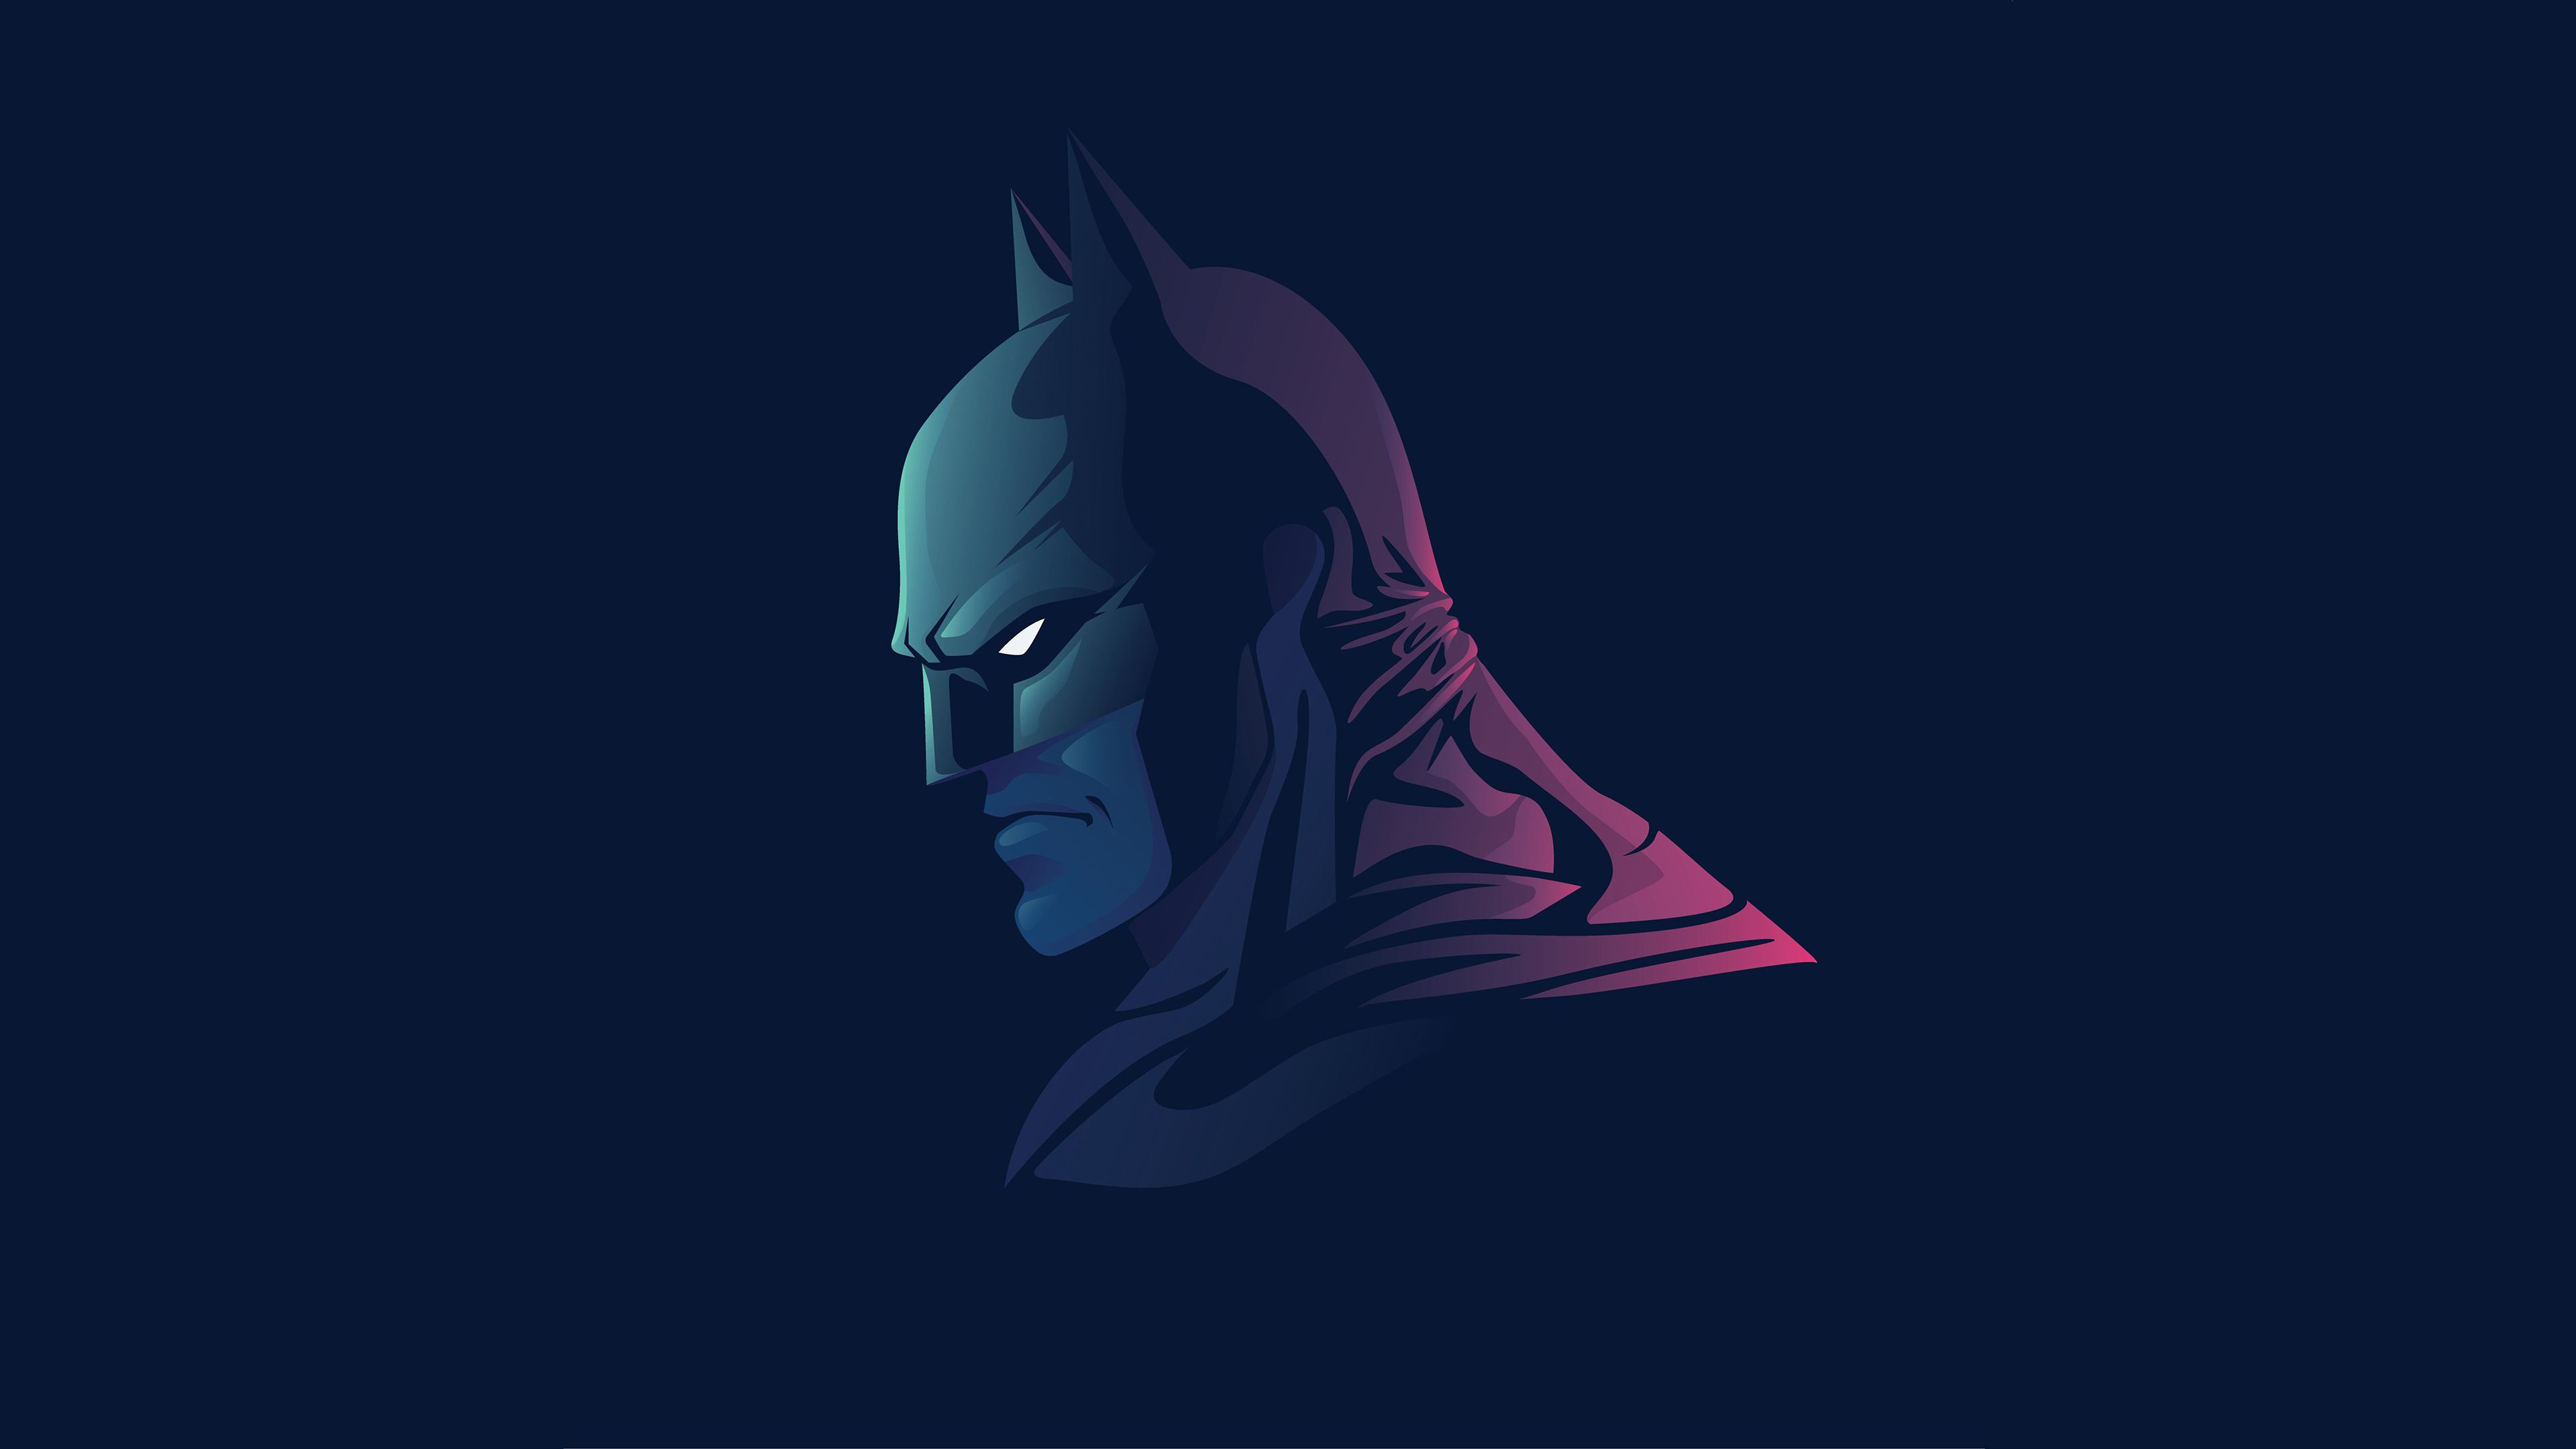 Batman The Dark Knight Minimal 4k Superheroes Wallpapers Minimalist Wallpapers Minimalism Wallpaper Batman Wallpaper Minimalist Wallpaper Superhero Wallpaper